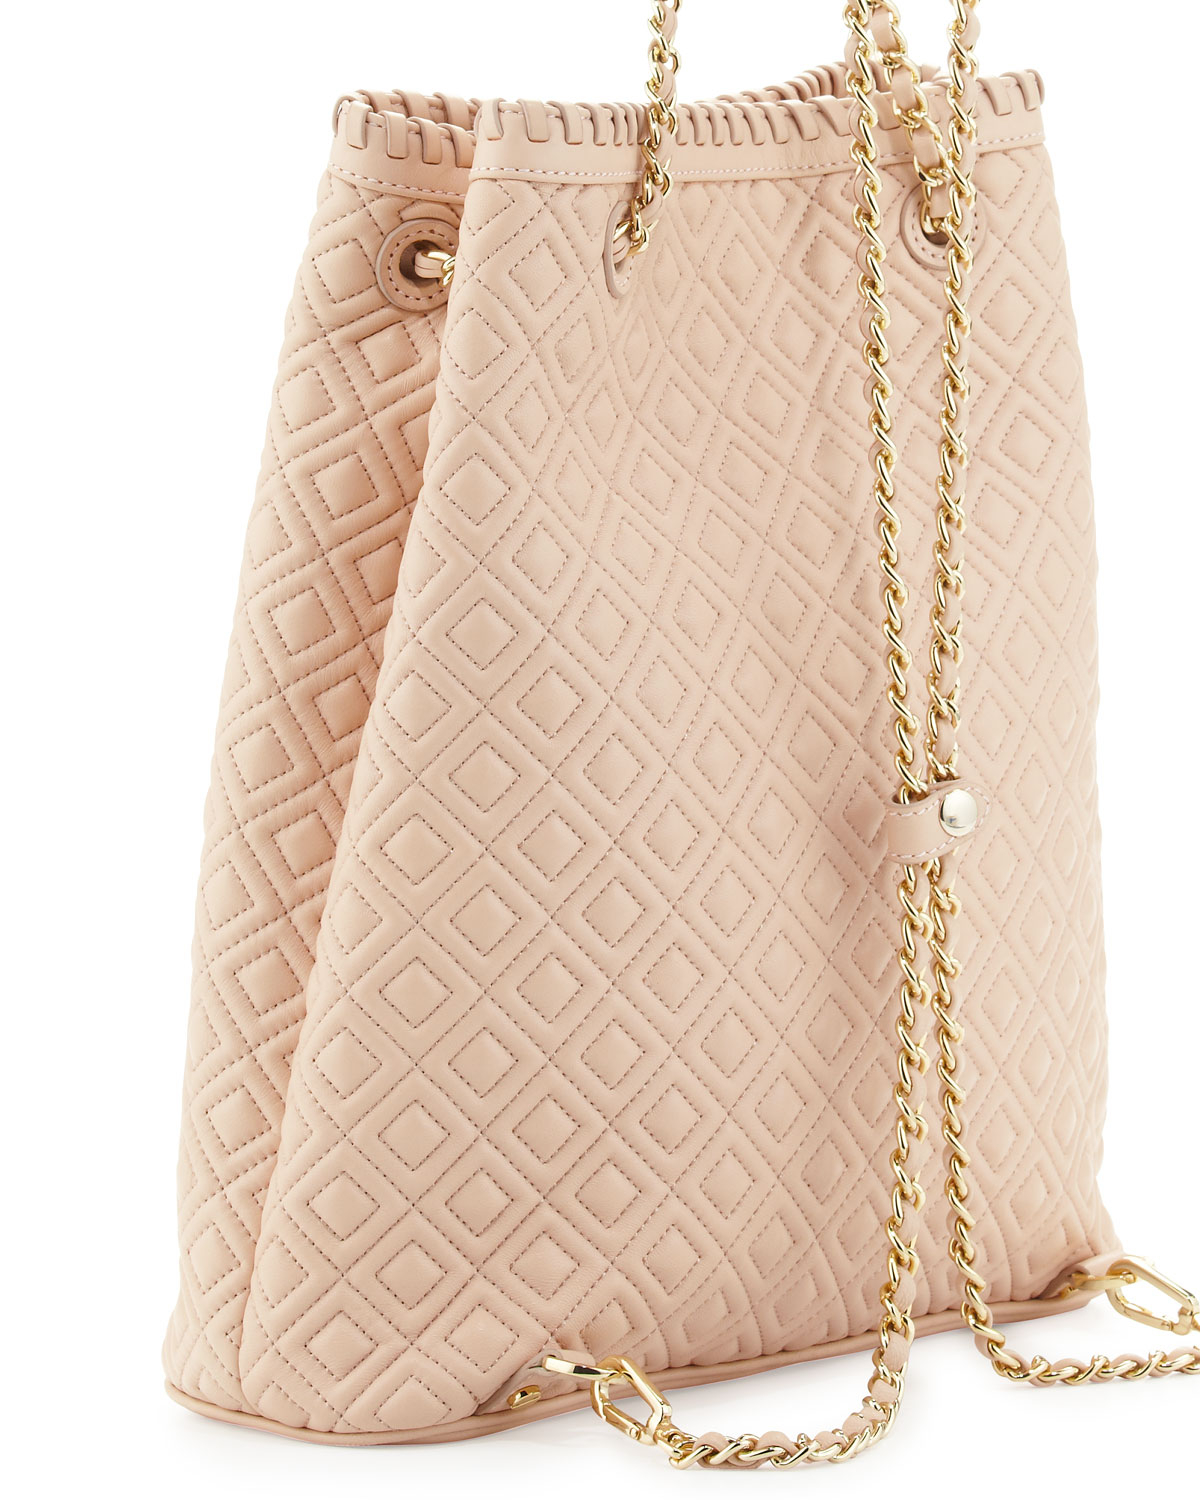 dbd1f85fc2cd Gallery. Previously sold at  Neiman Marcus · Women s Tory Burch Marion ...